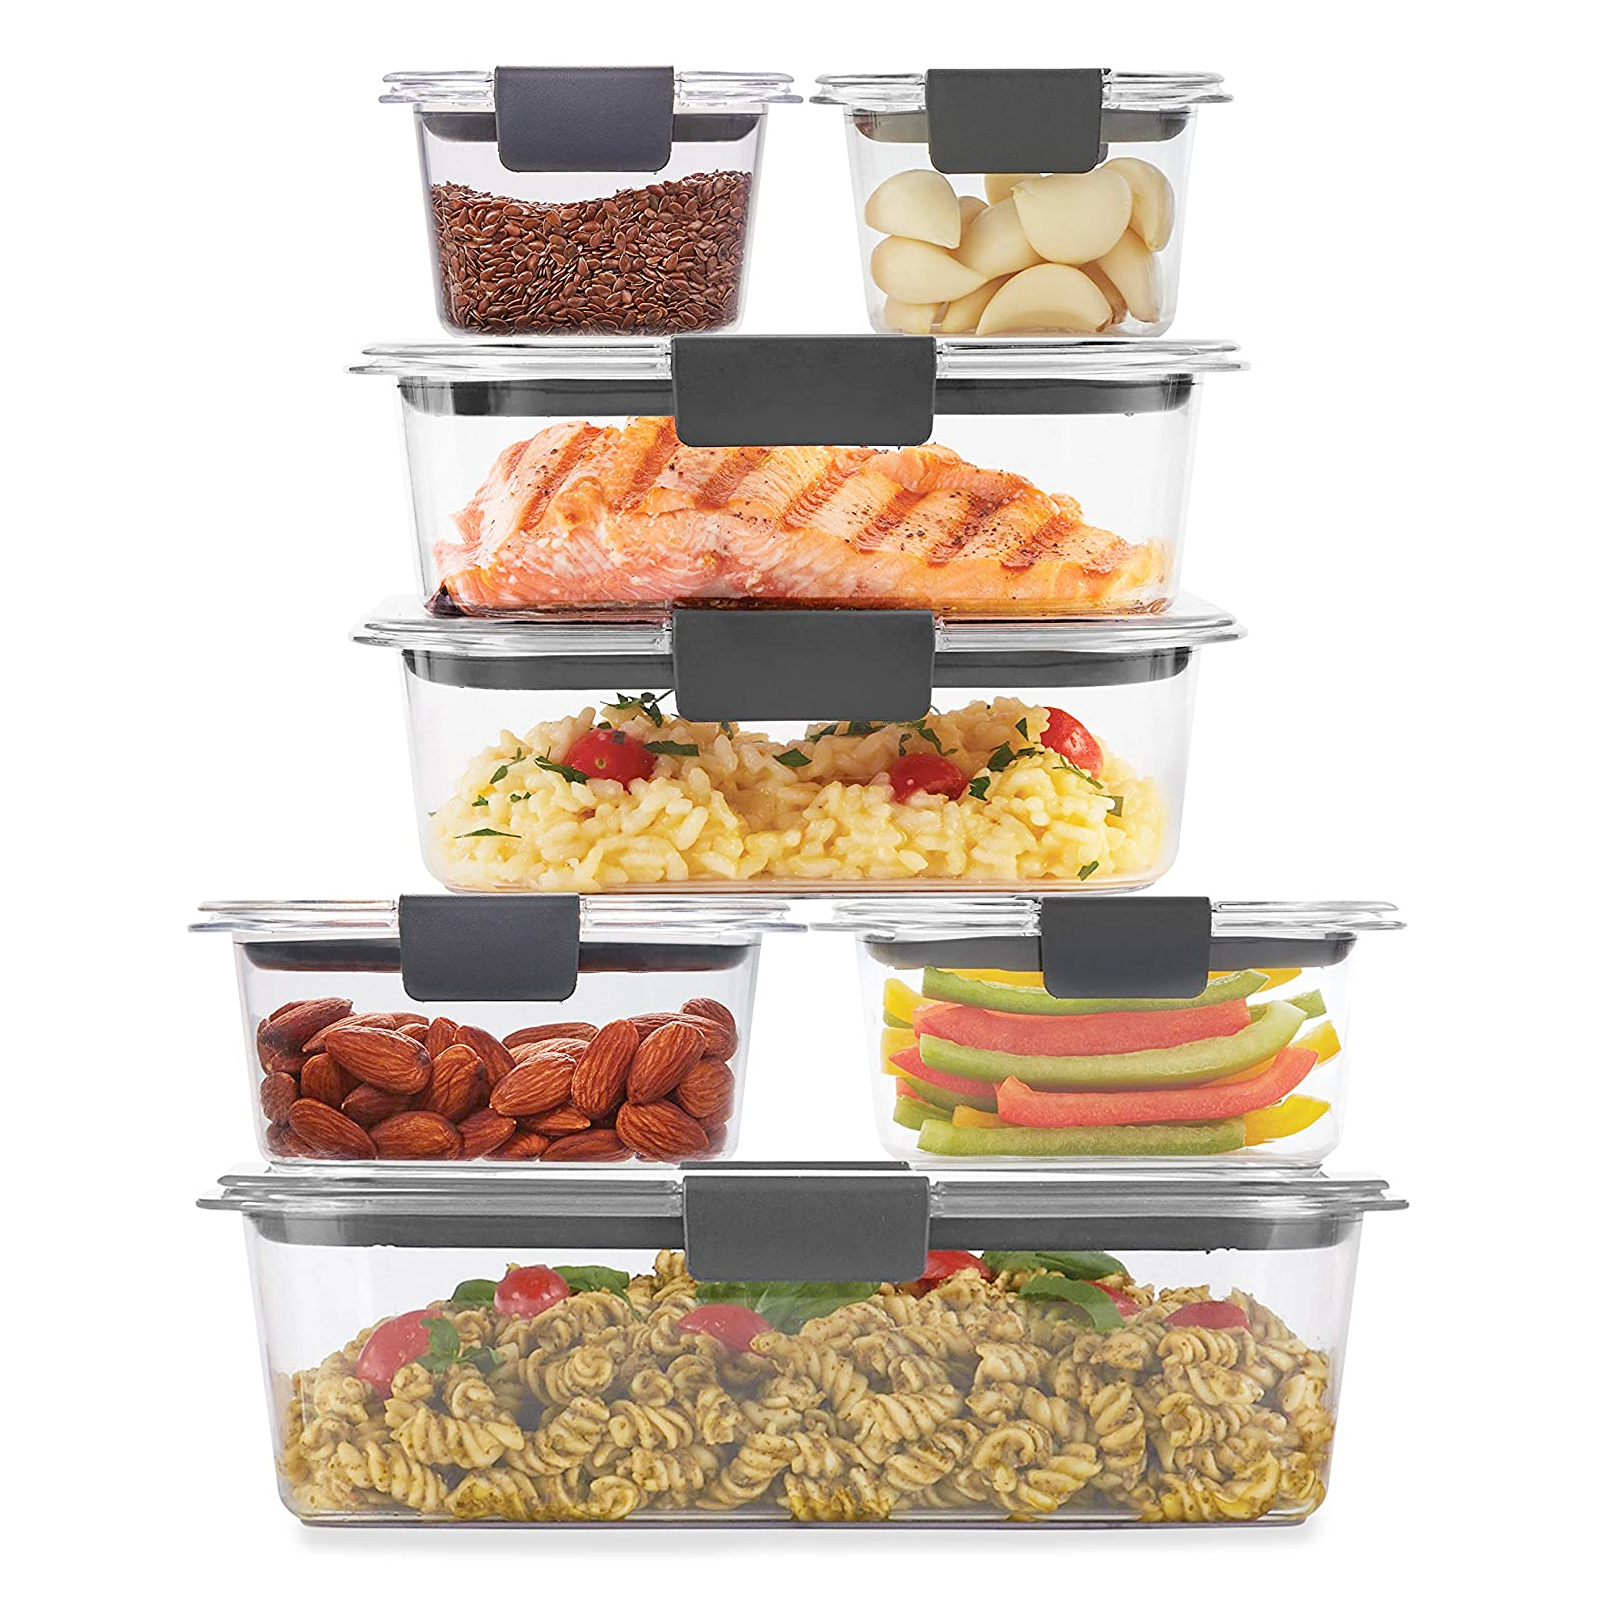 Rubbermaid Brilliance 14-Piece Plastic Food Container